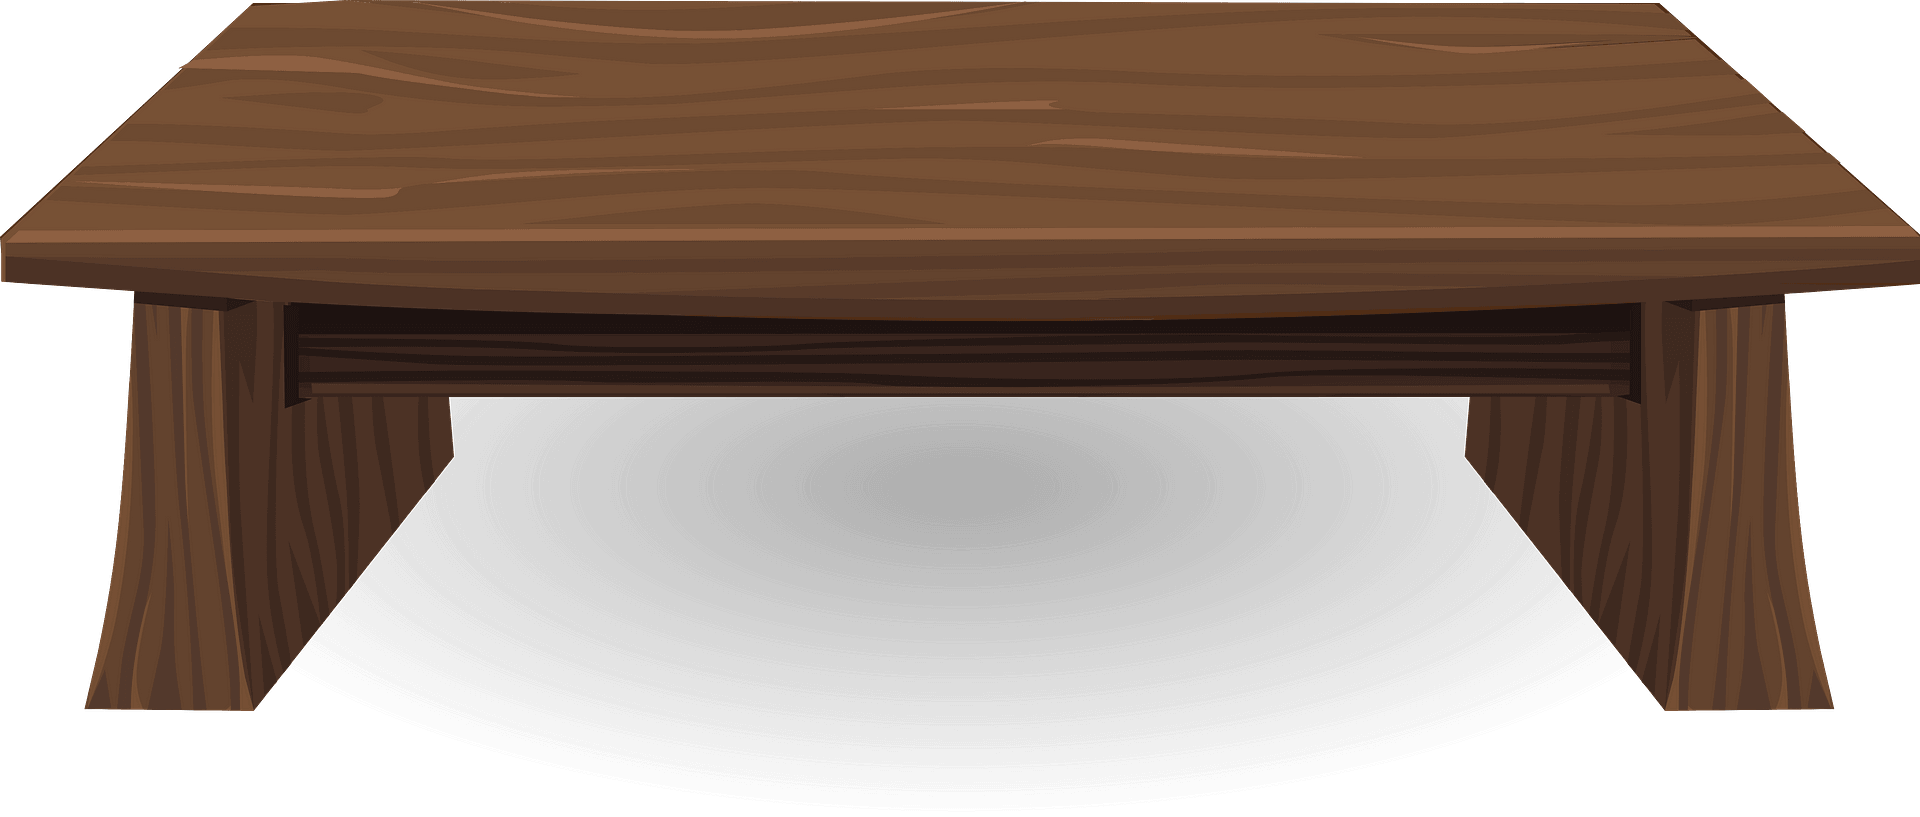 Glitch Simplified Wooden Table Clipart Free Download Transparent Png Creazilla